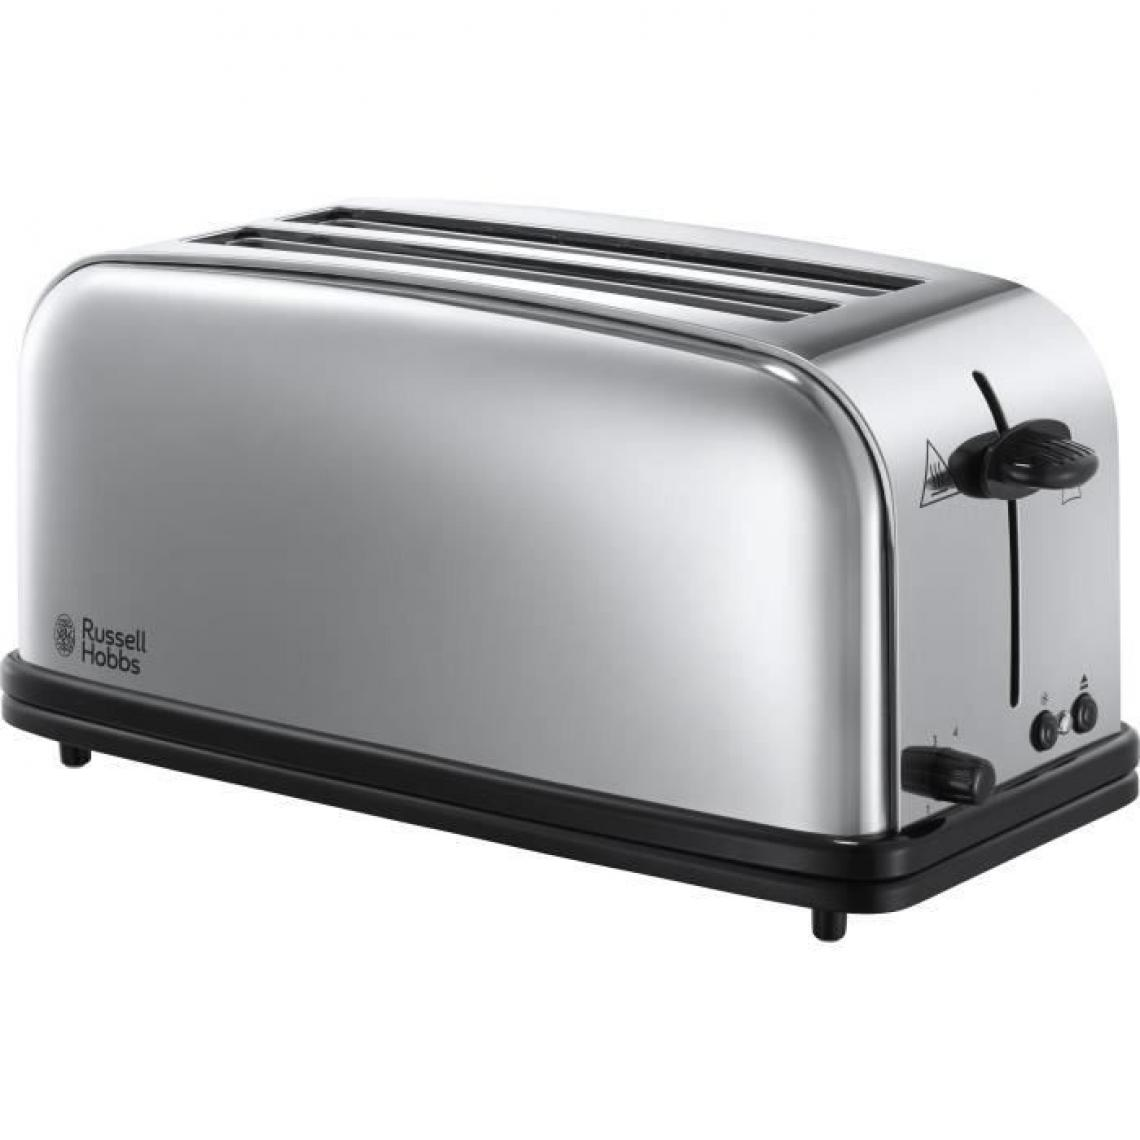 Russell Hobbs RUSSELL HOBBS 23520-56 - Grille-pain Victory - 2 longues fentes - Rechauffe viennoiserie - 1600 W - Design retro - Acier